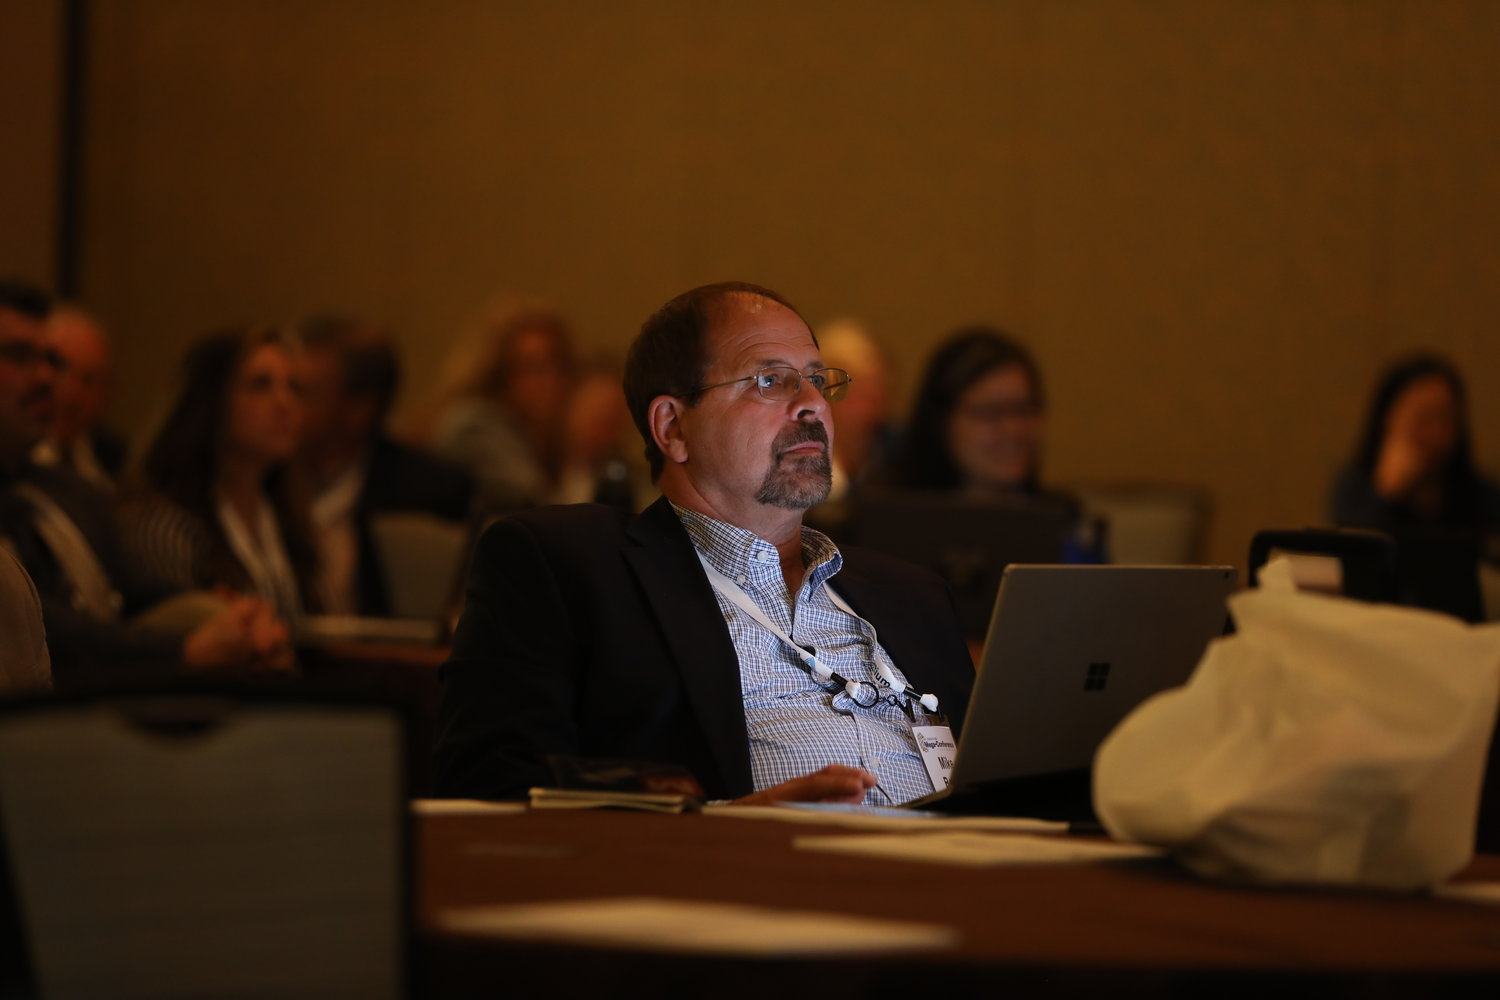 2020 Mega-Conference in Fort Worth, Texas. (Photo by Bob Booth)